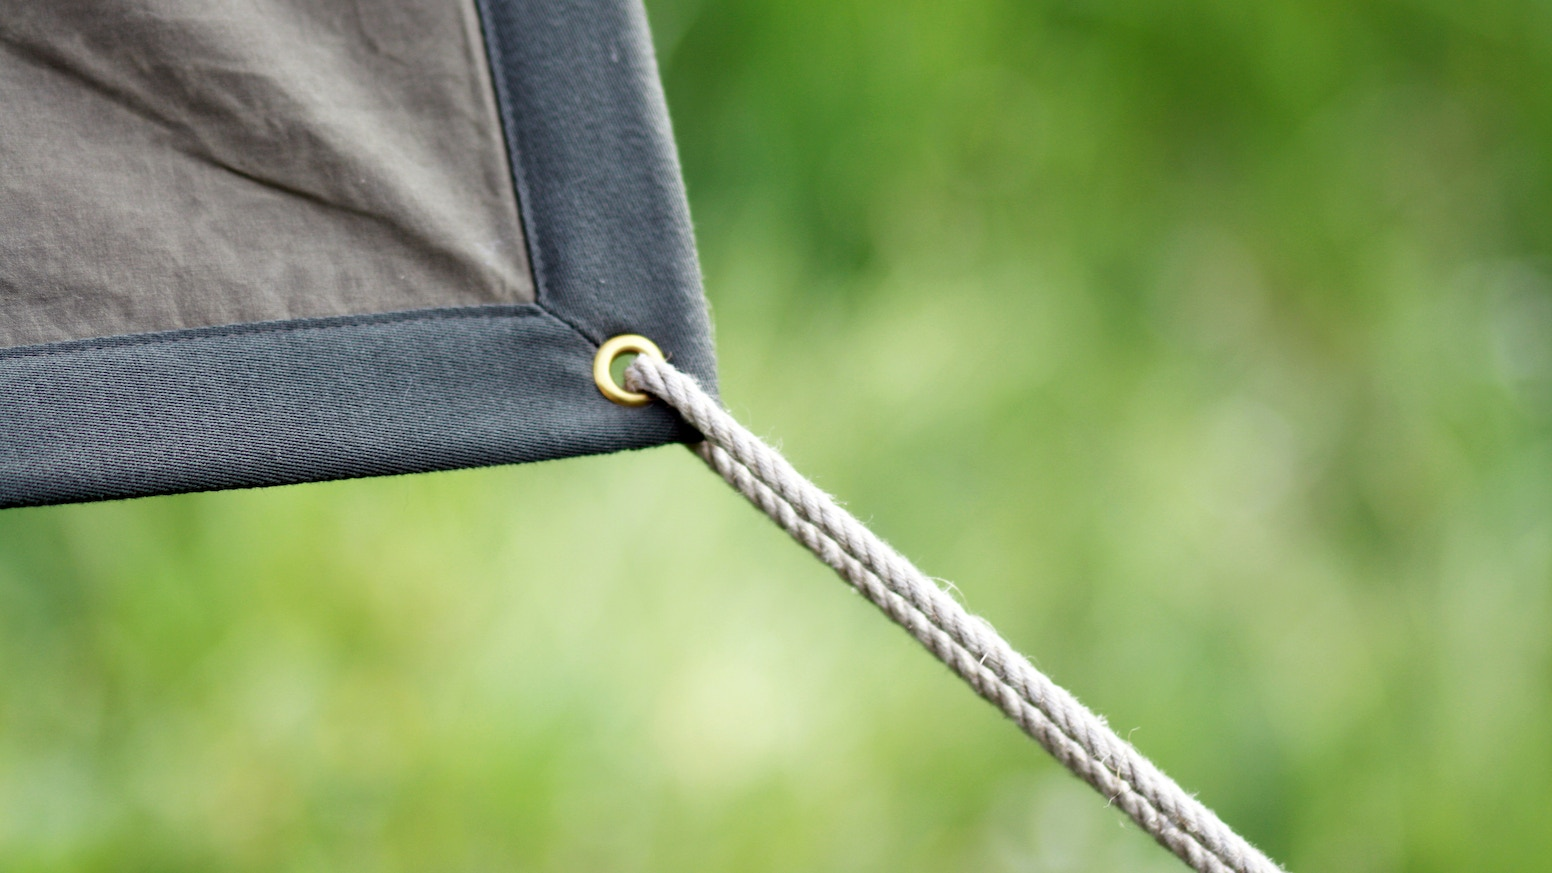 High-quality handmade picnic blanket. Made from waxed cotton and soft cotton fleece in Switzerland.